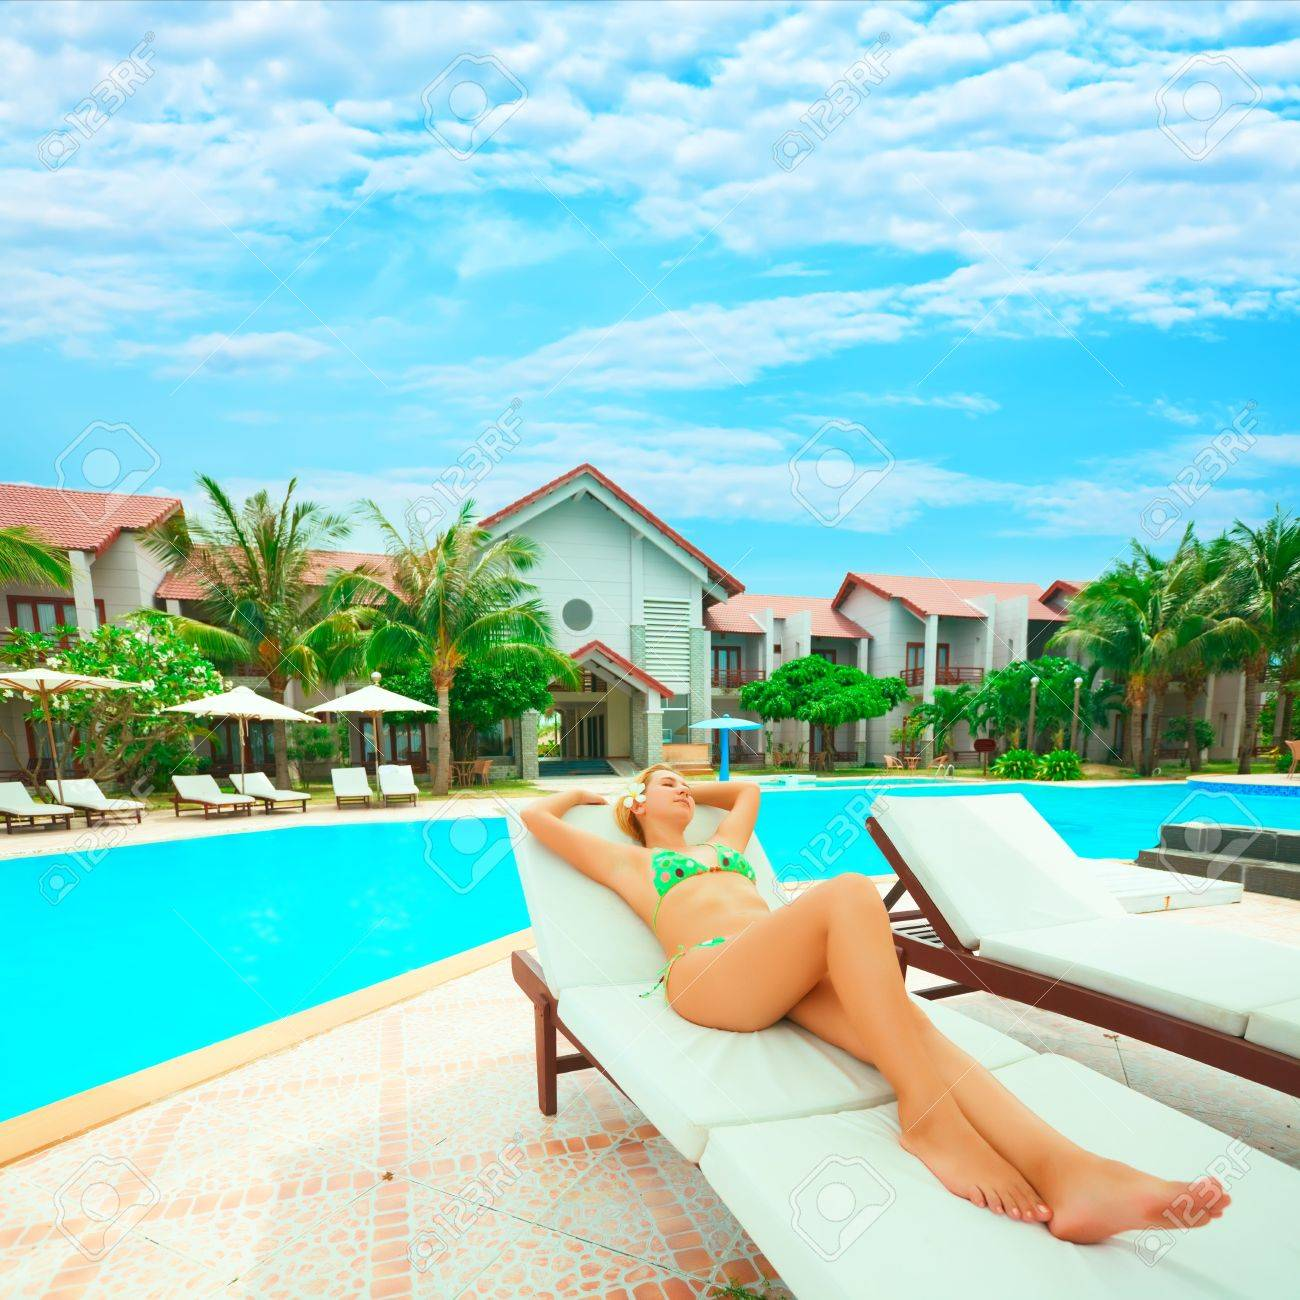 Stock Photo   Young Woman Sunbathing On The Chair Near The Swimming Pool